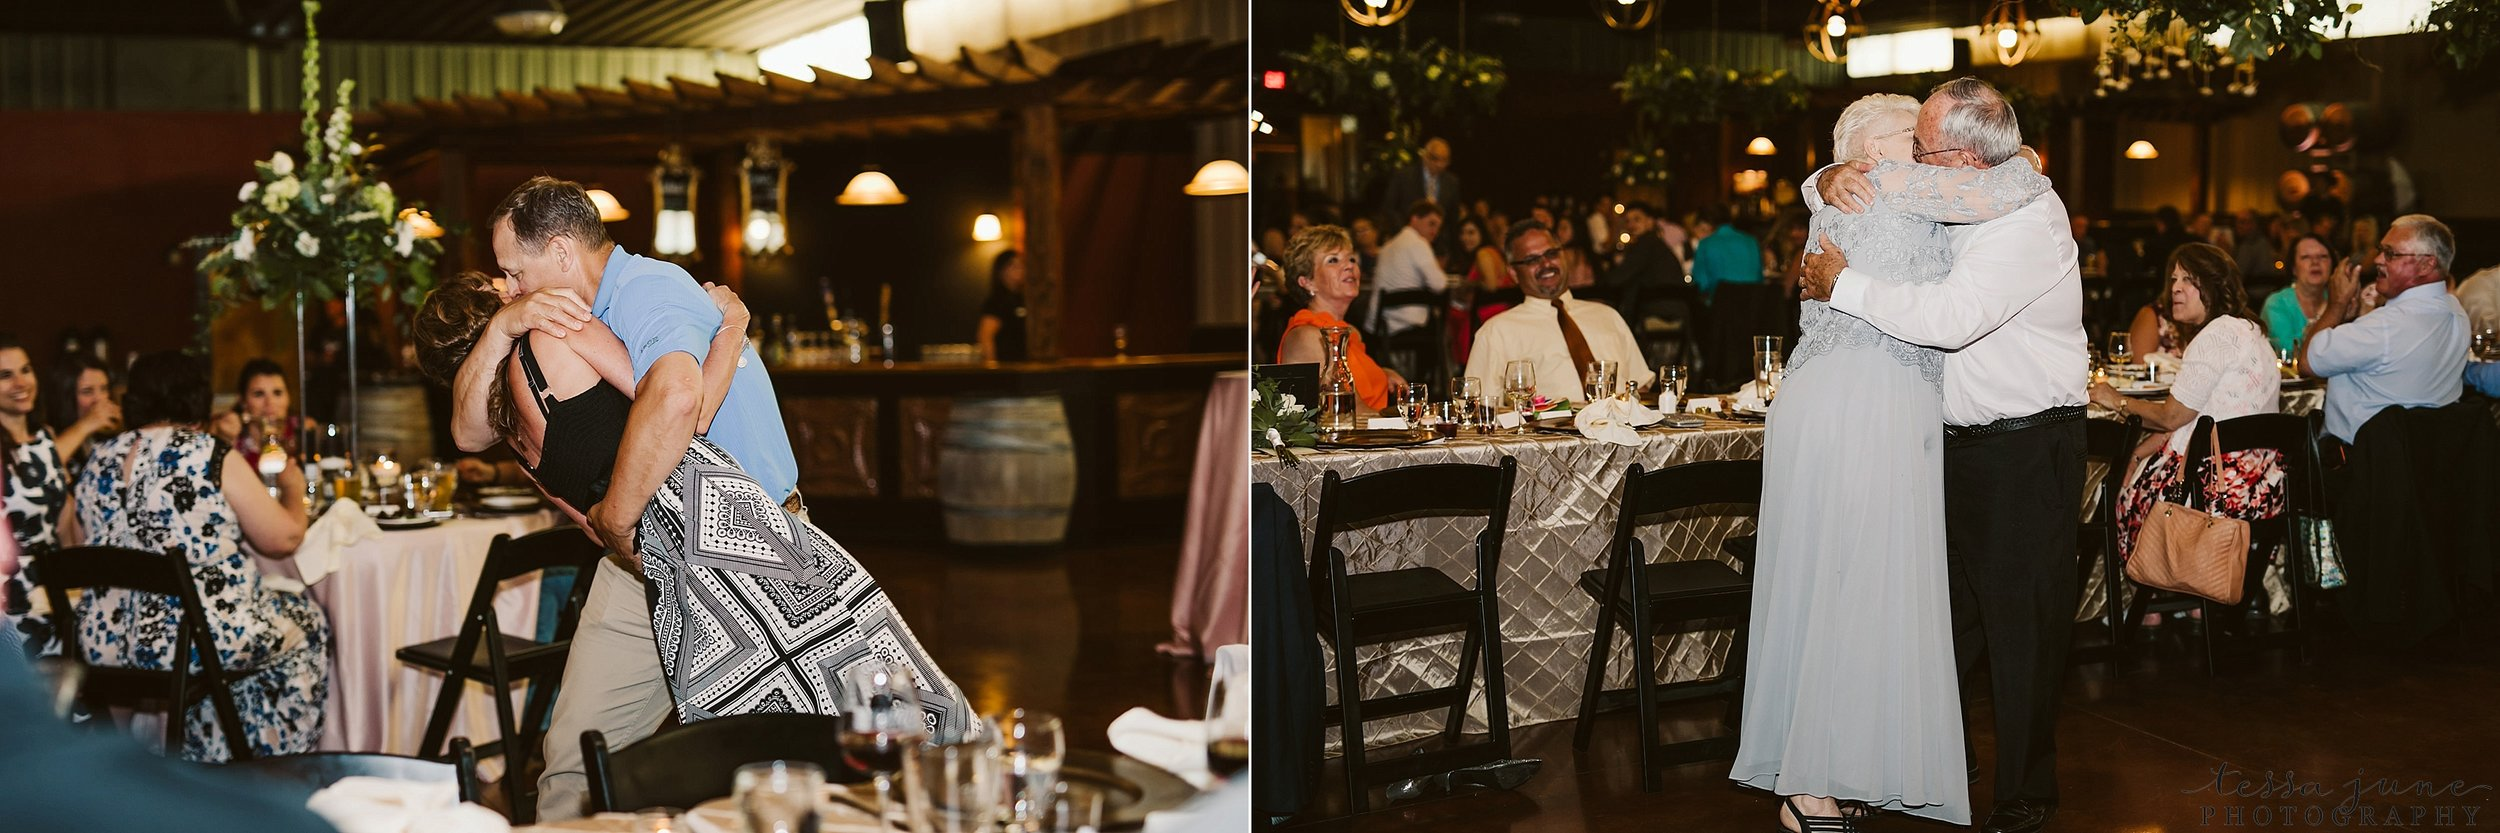 carlos-creek-winery-wedding-alexandria-minnesota-glam-elegant-floral-122.jpg